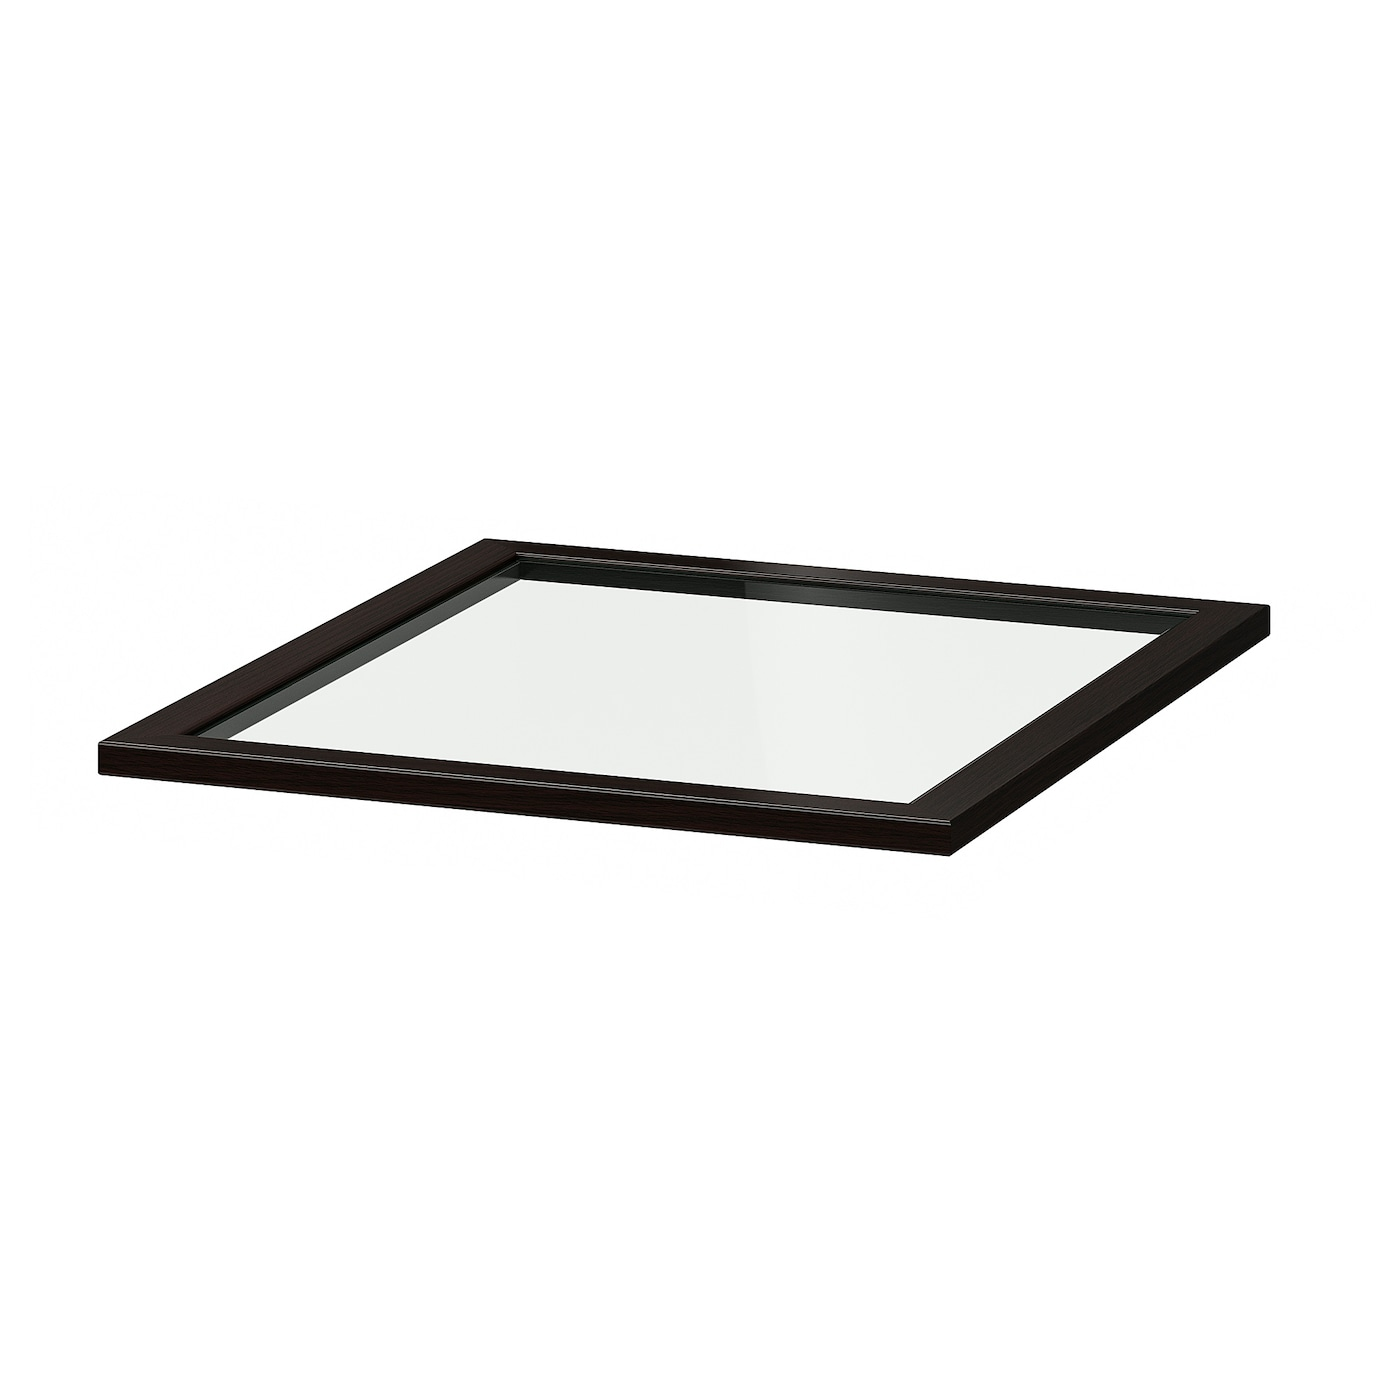 IKEA KOMPLEMENT tablette en verre